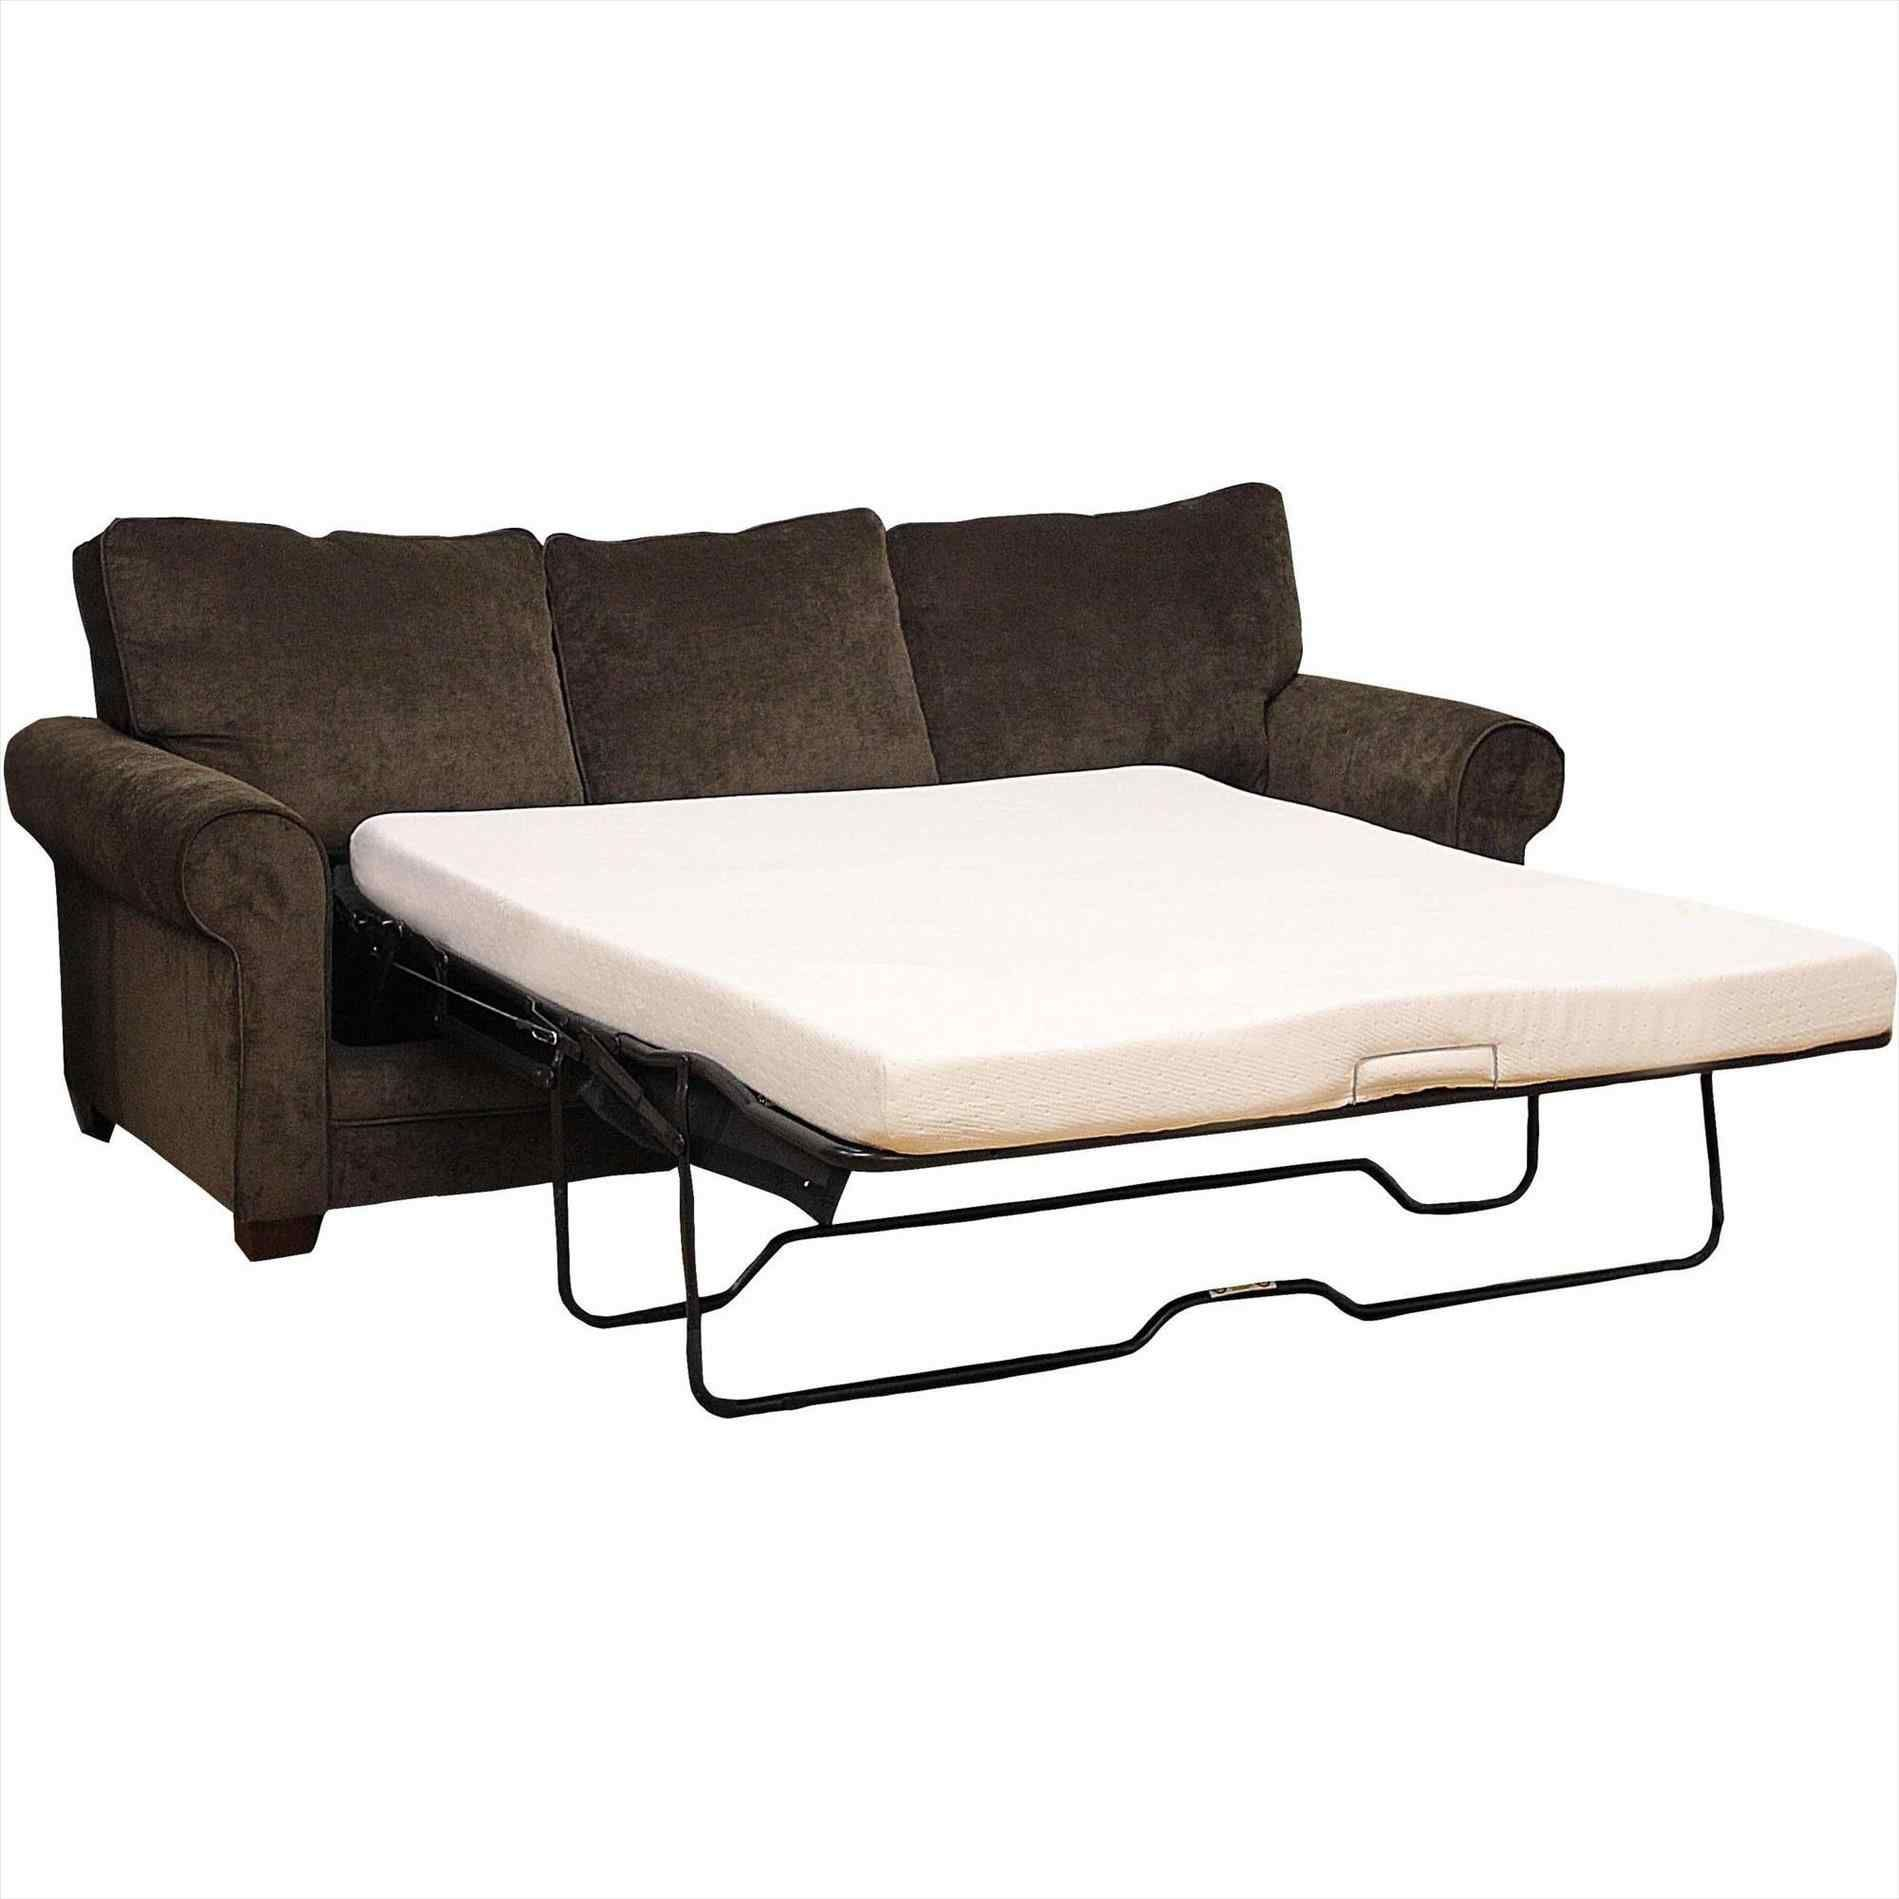 Ideas With Tempurpedic Sleeper Sofa Mattress Foam U Tempurpedic Sleeper Sofa  Mattress Interior Design Fletcher Tempurpedic